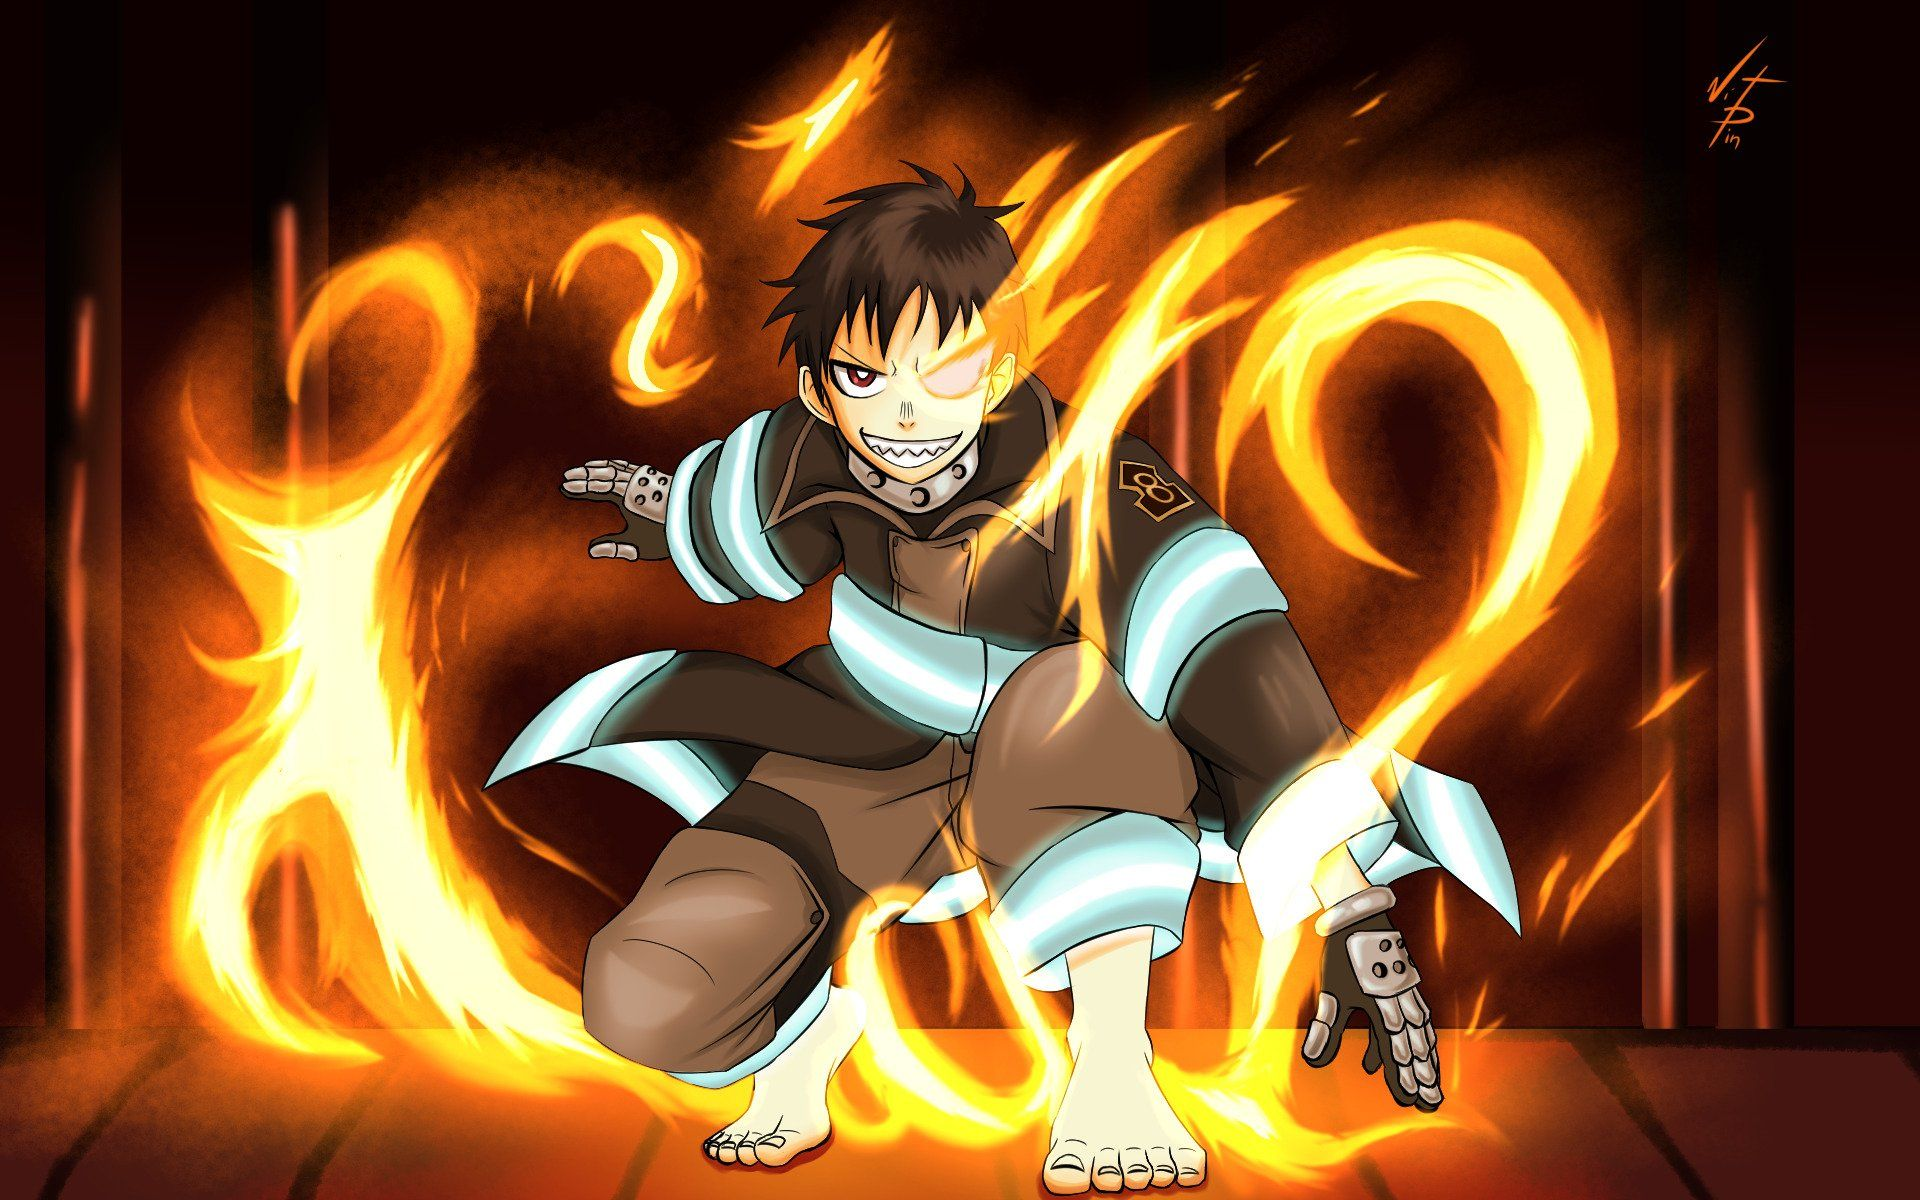 Tagged With Wallpaper Anime Wallpaper Manwha Upscale The Nerdy Girl News Fire Force Amazing Shinra Background By Shinra Kusakabe Anime Tokyo Ghoul Pictures